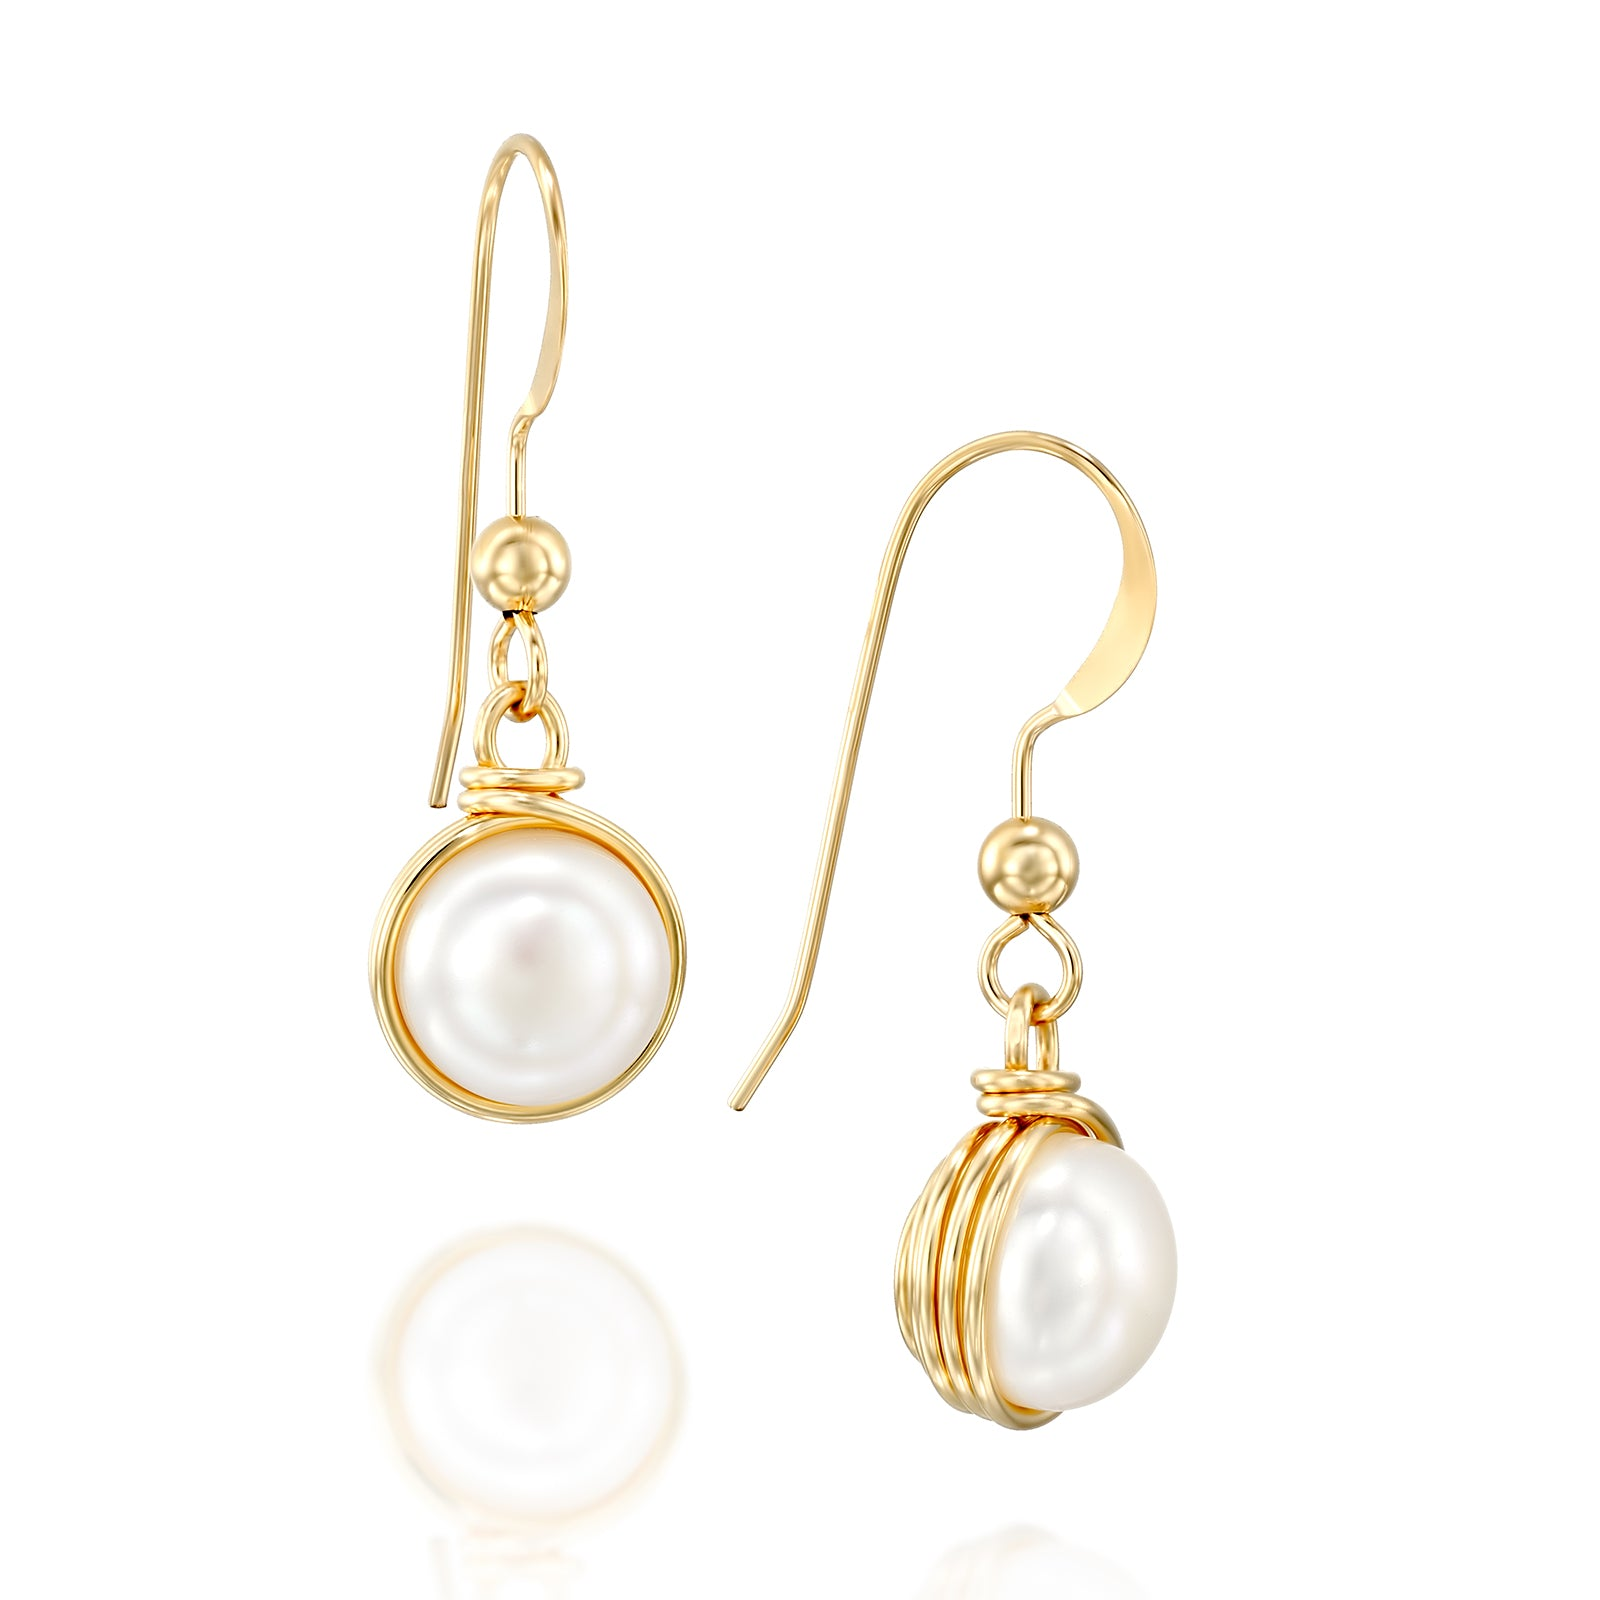 14k Gold Filled Pearl Earrings Wedding Bridal Jewelry Bridesmaid